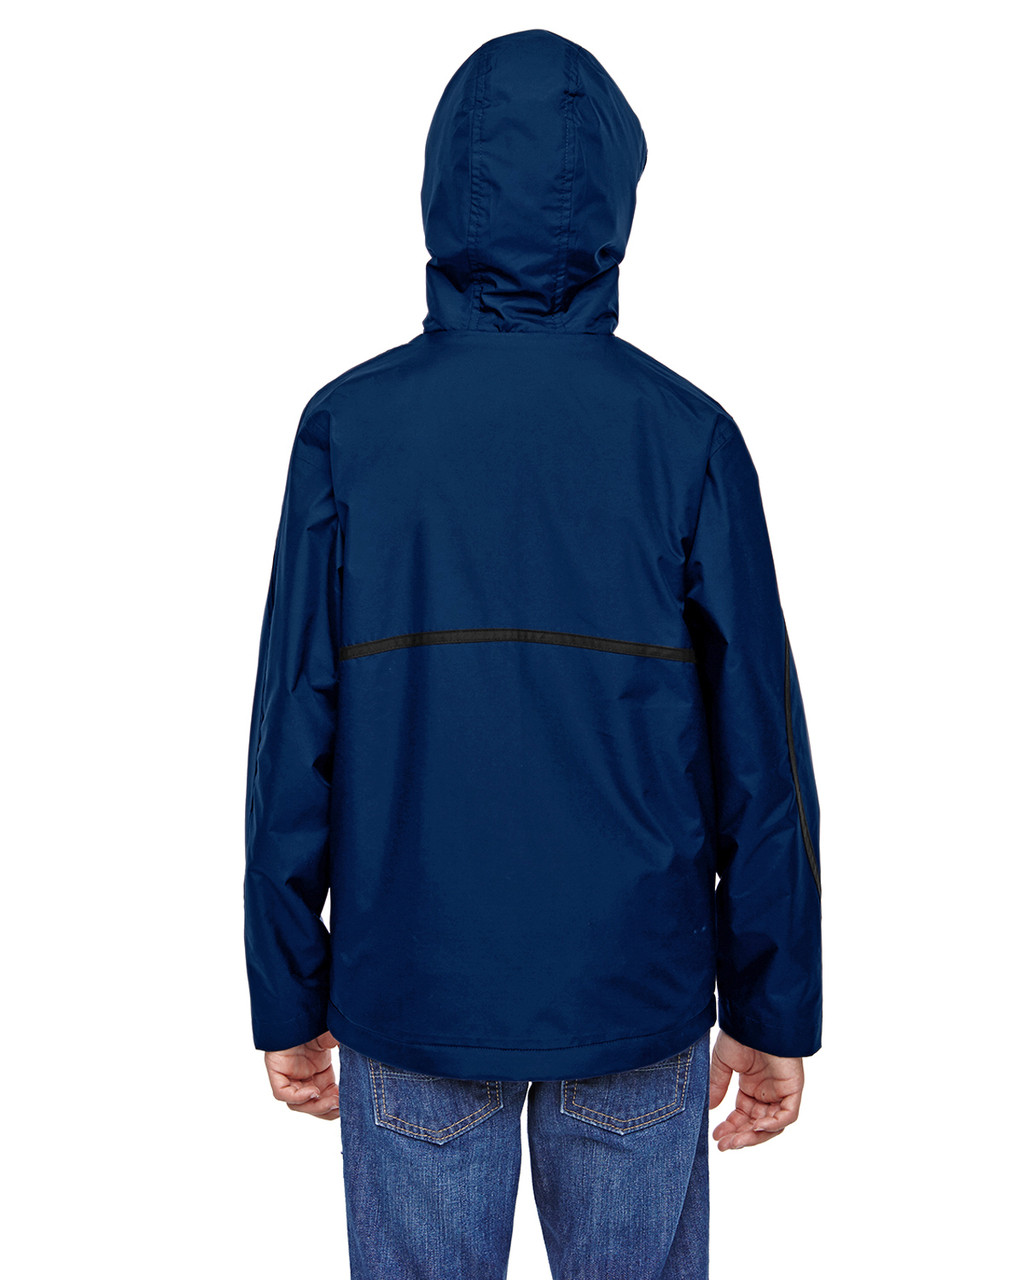 Sport Dark Navy-back TT72Y Team 365 Conquest Jacket with Fleece Lining